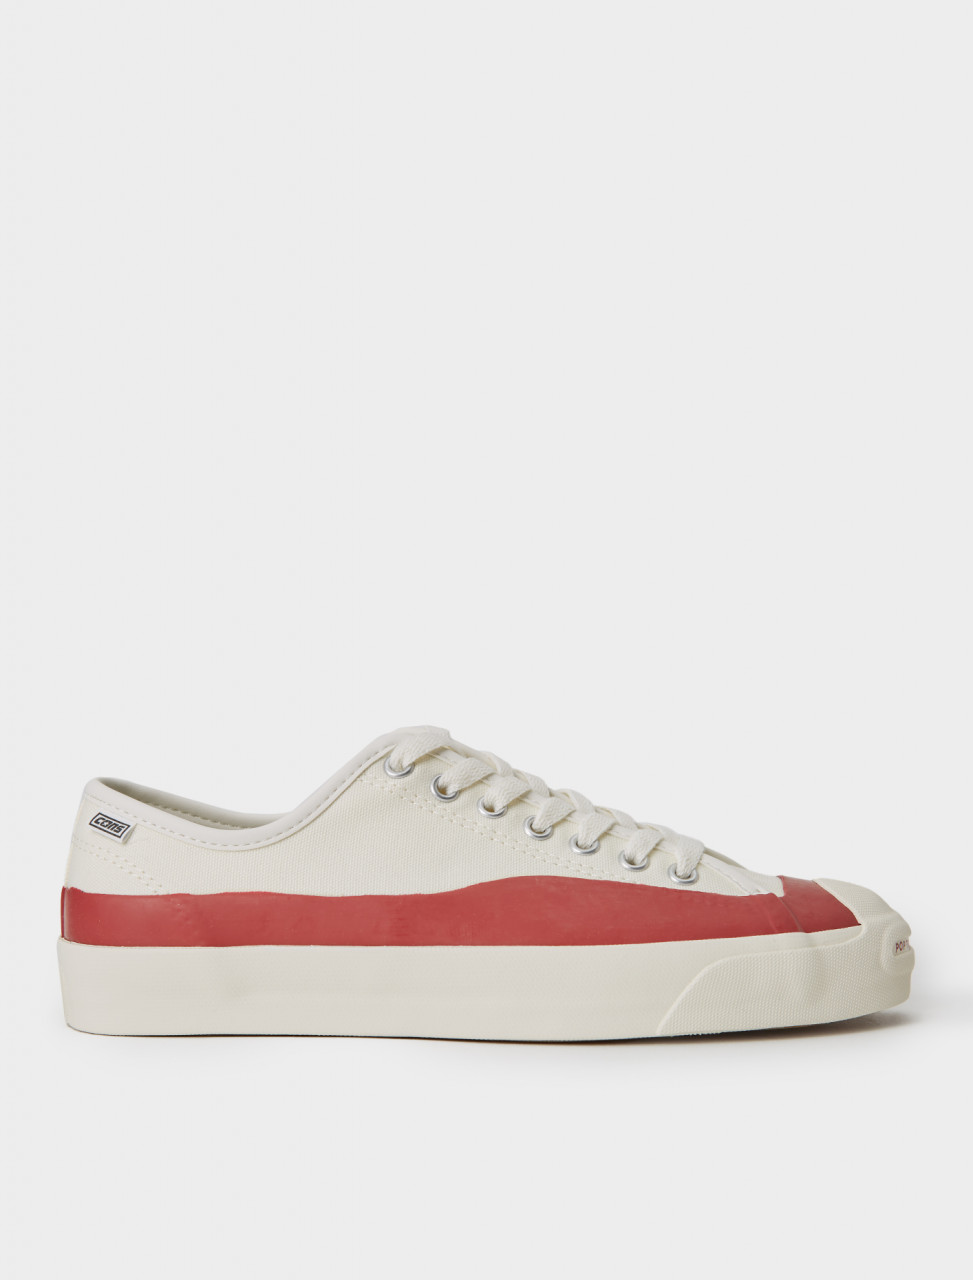 x Pop Trading Company Jack Purcell Low Sneaker